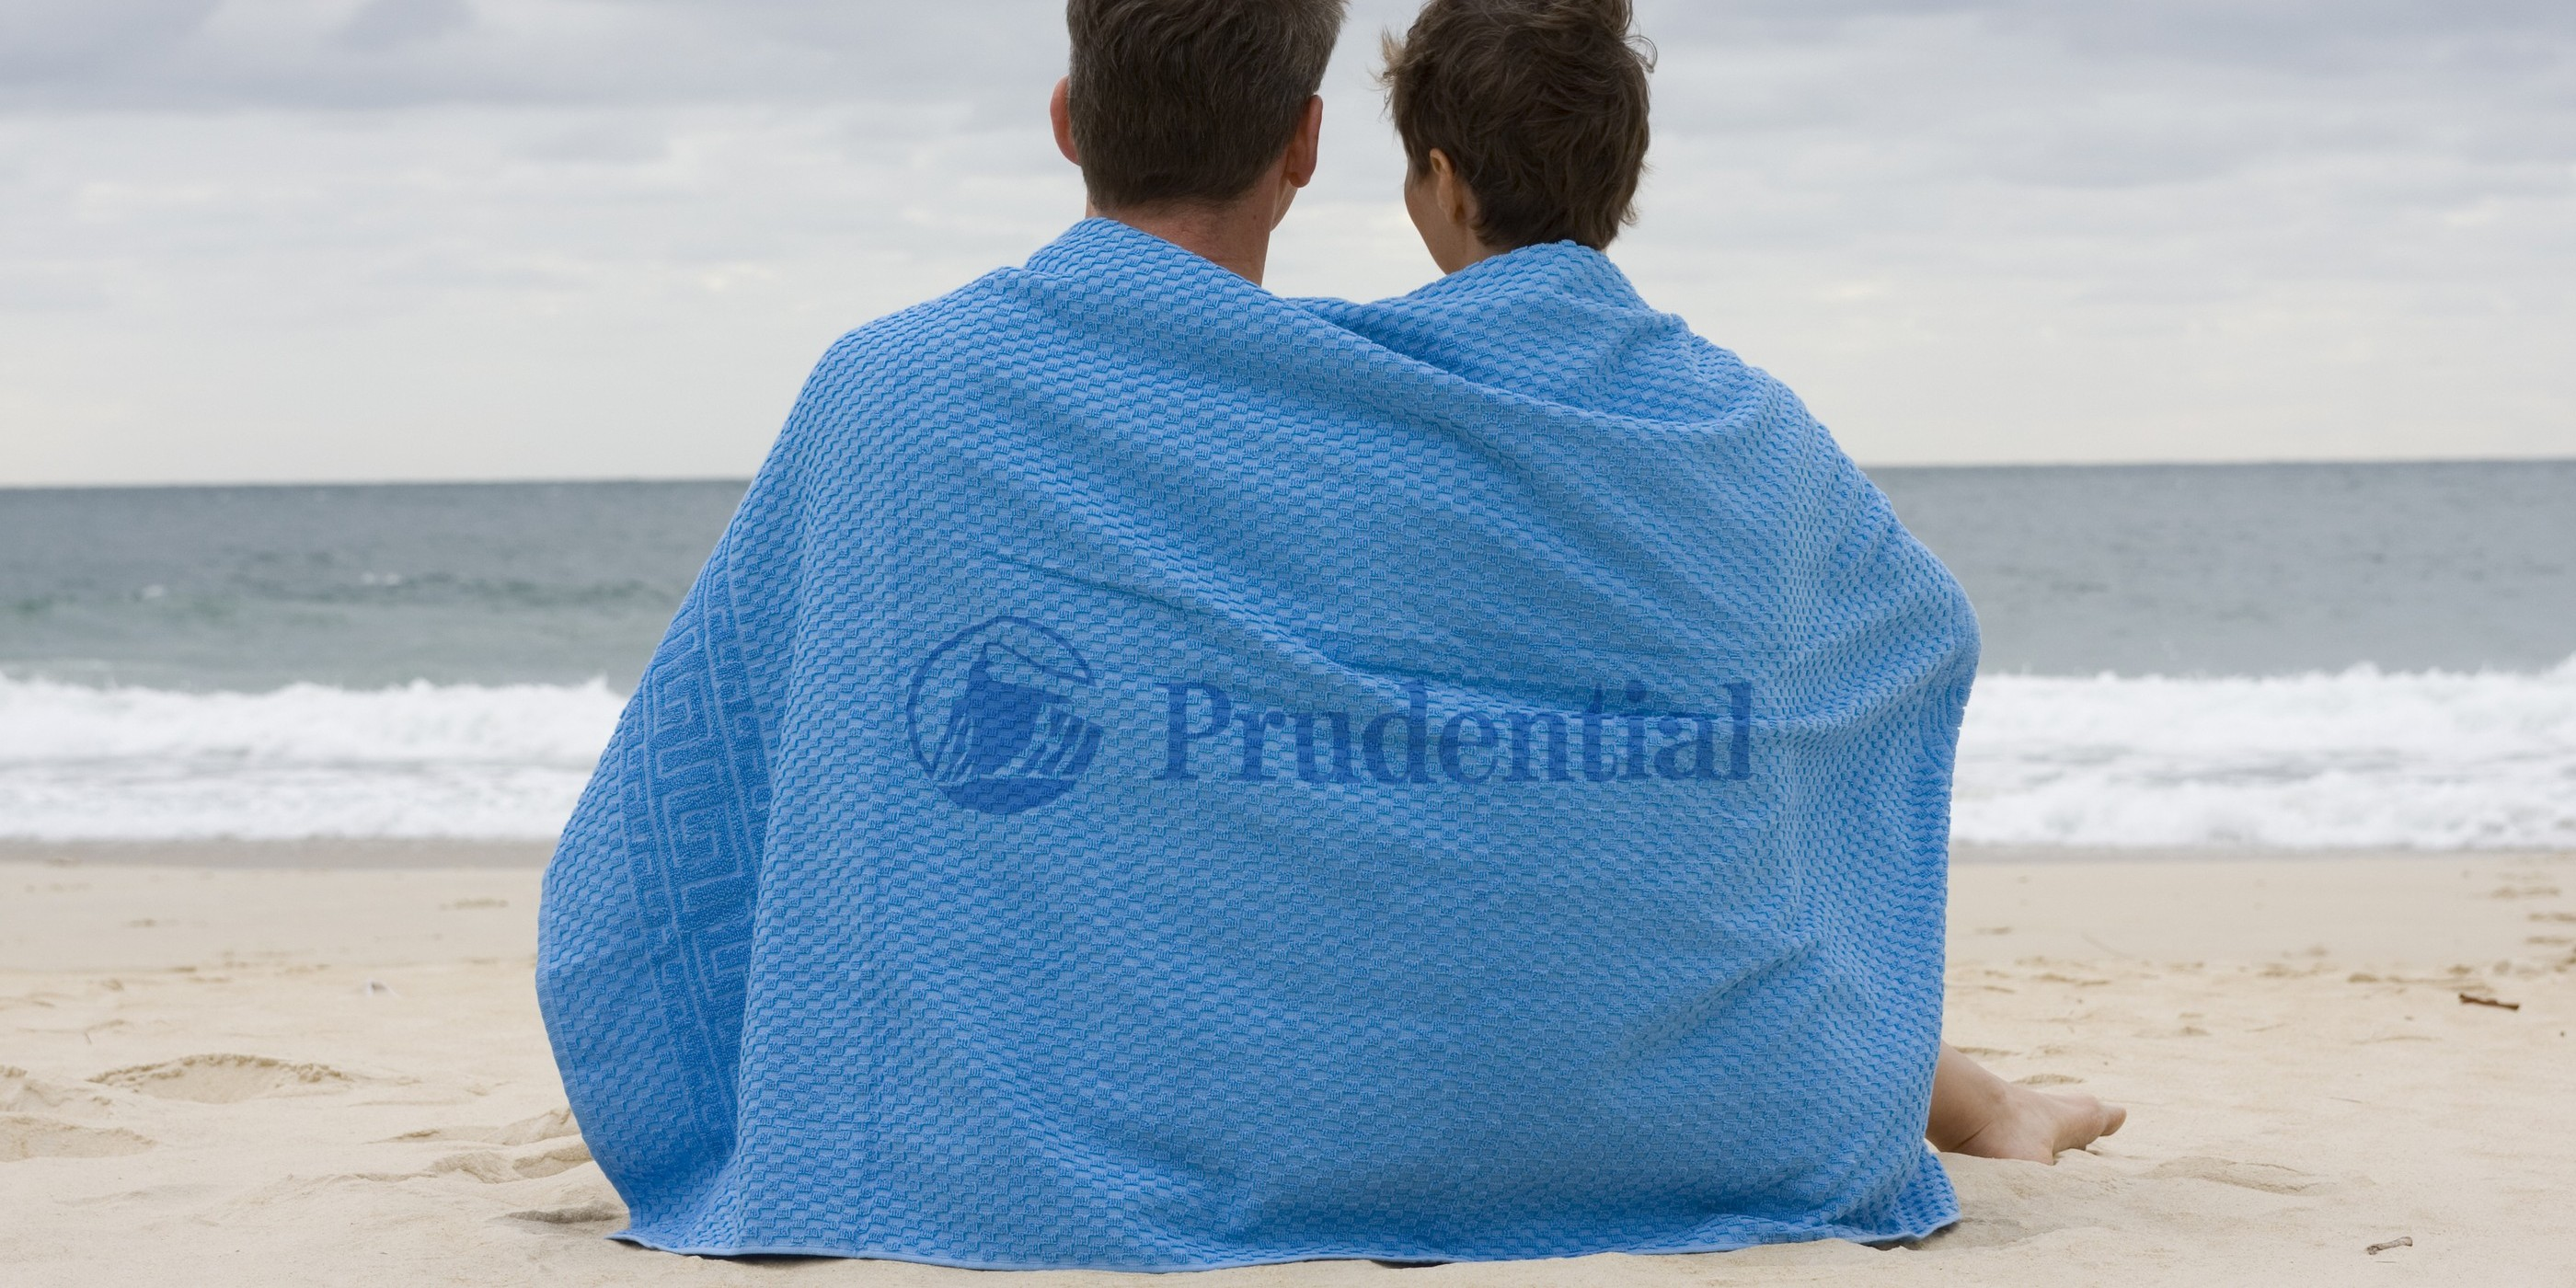 Branded Merchandise for Prudential